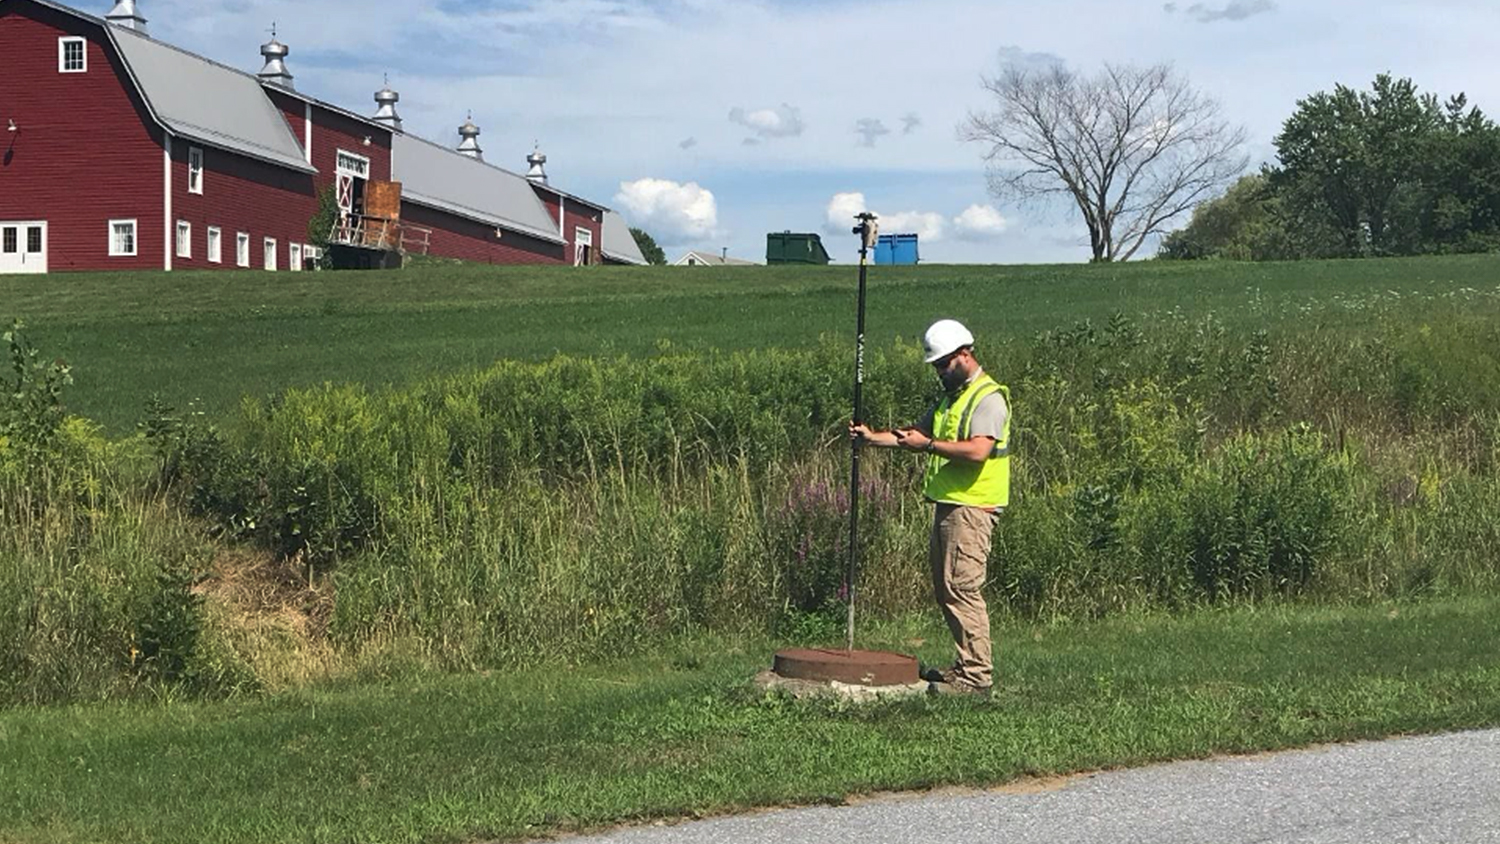 Vermont Gas uses Arrow Gold GNSS receivers and ArcGIS Collector for gas utility asset mapping